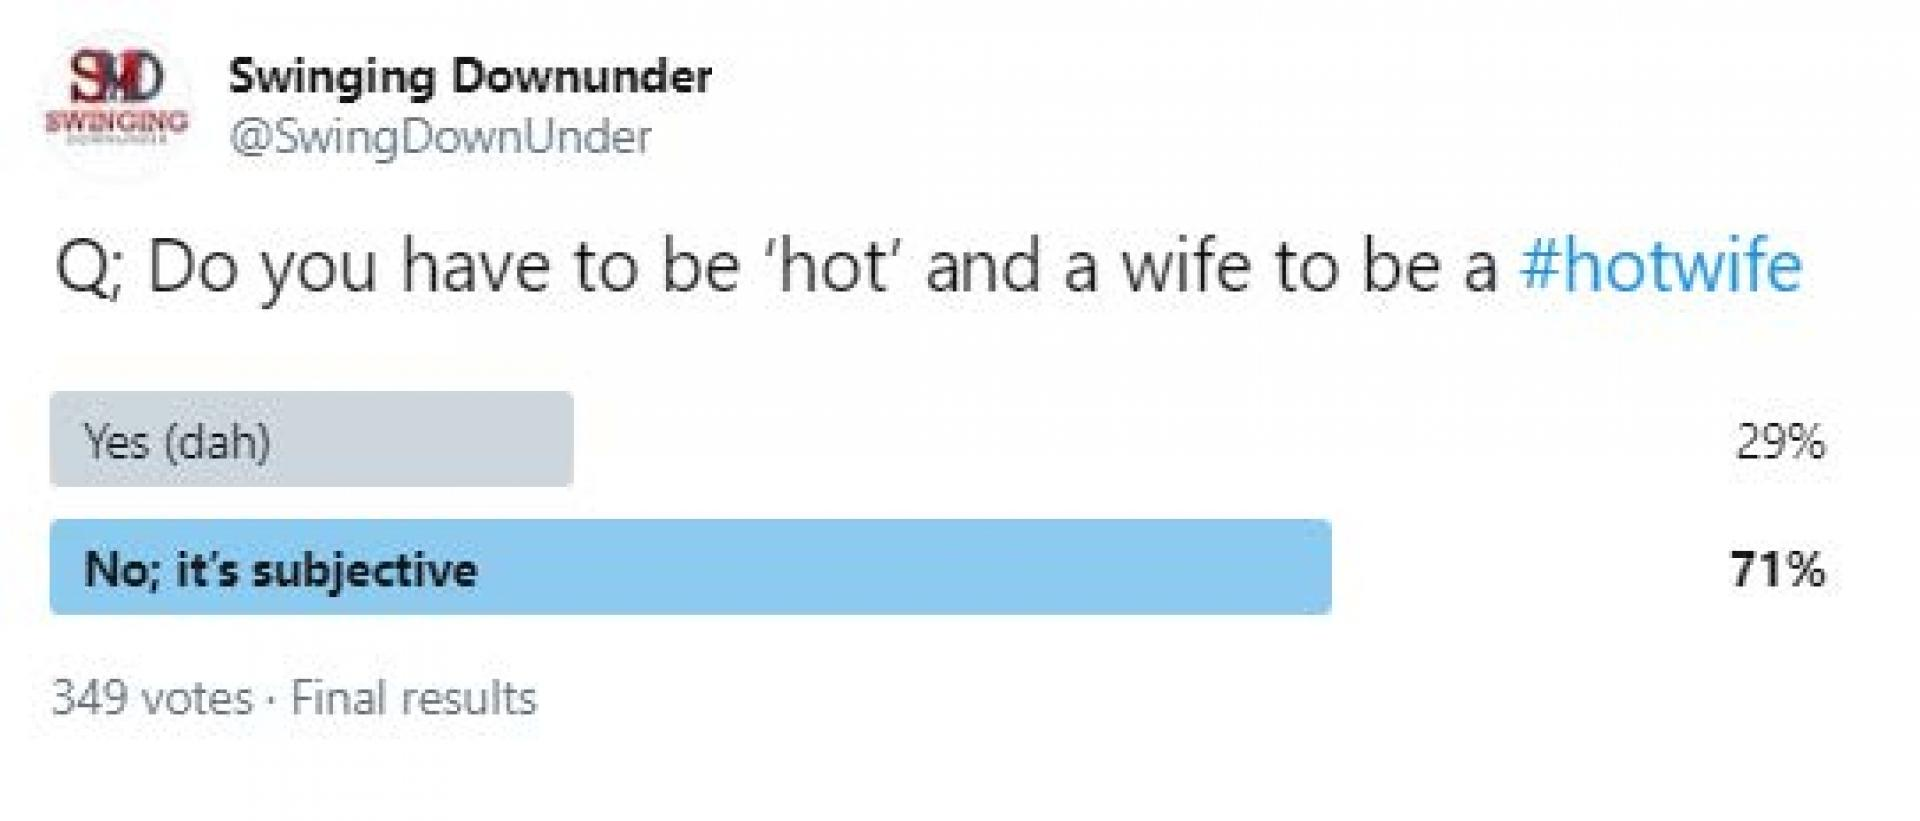 Do you have to be 'hot' and a 'wife' to be a #hotwife?